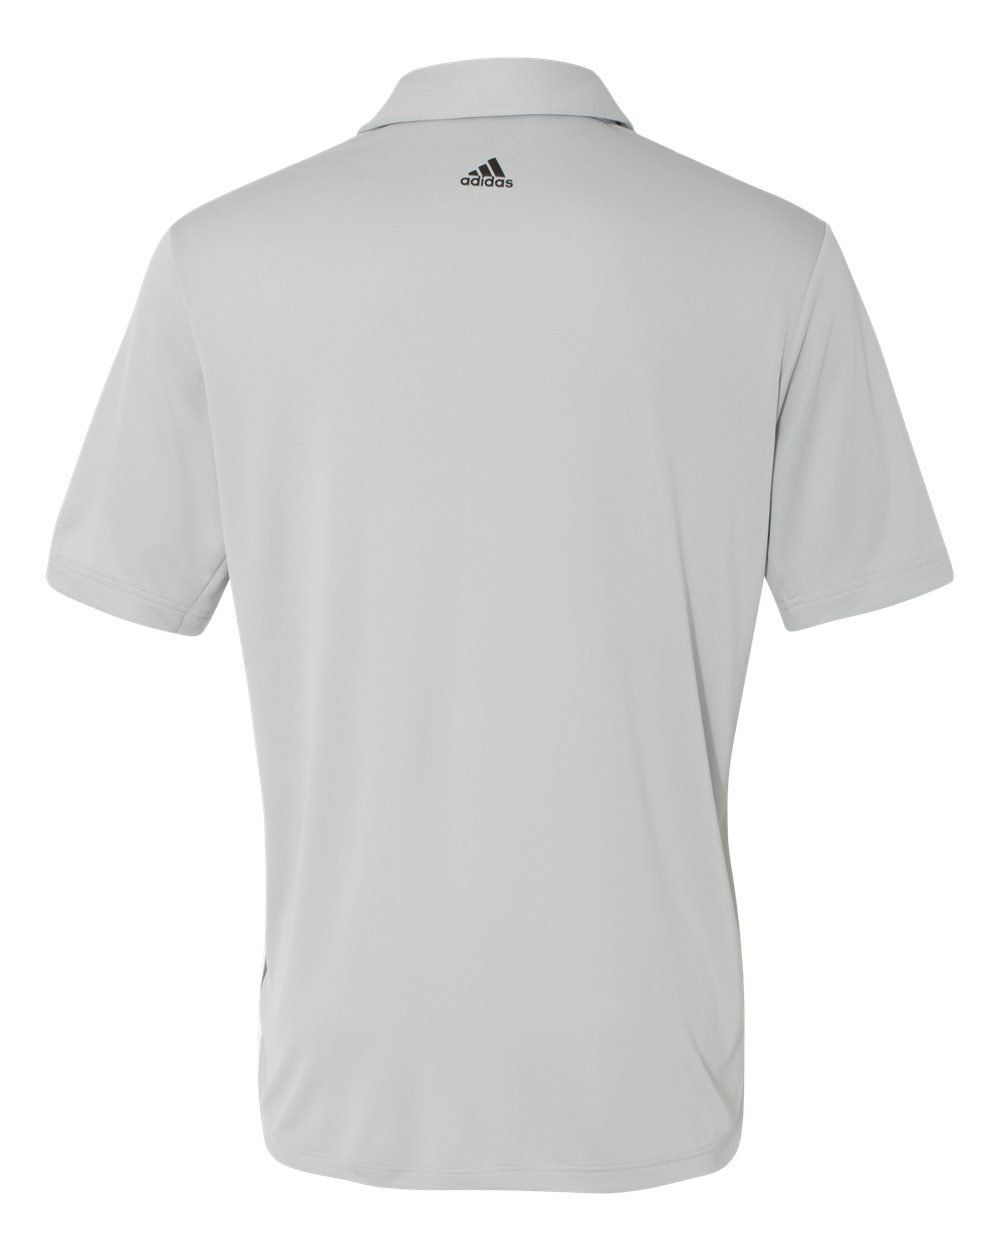 1fd3d5694069 Men Golf Clothing - adidas A136 Mens Climacool Engineered Stripe Sport Shirt  Stone Vista Grey White 3XL